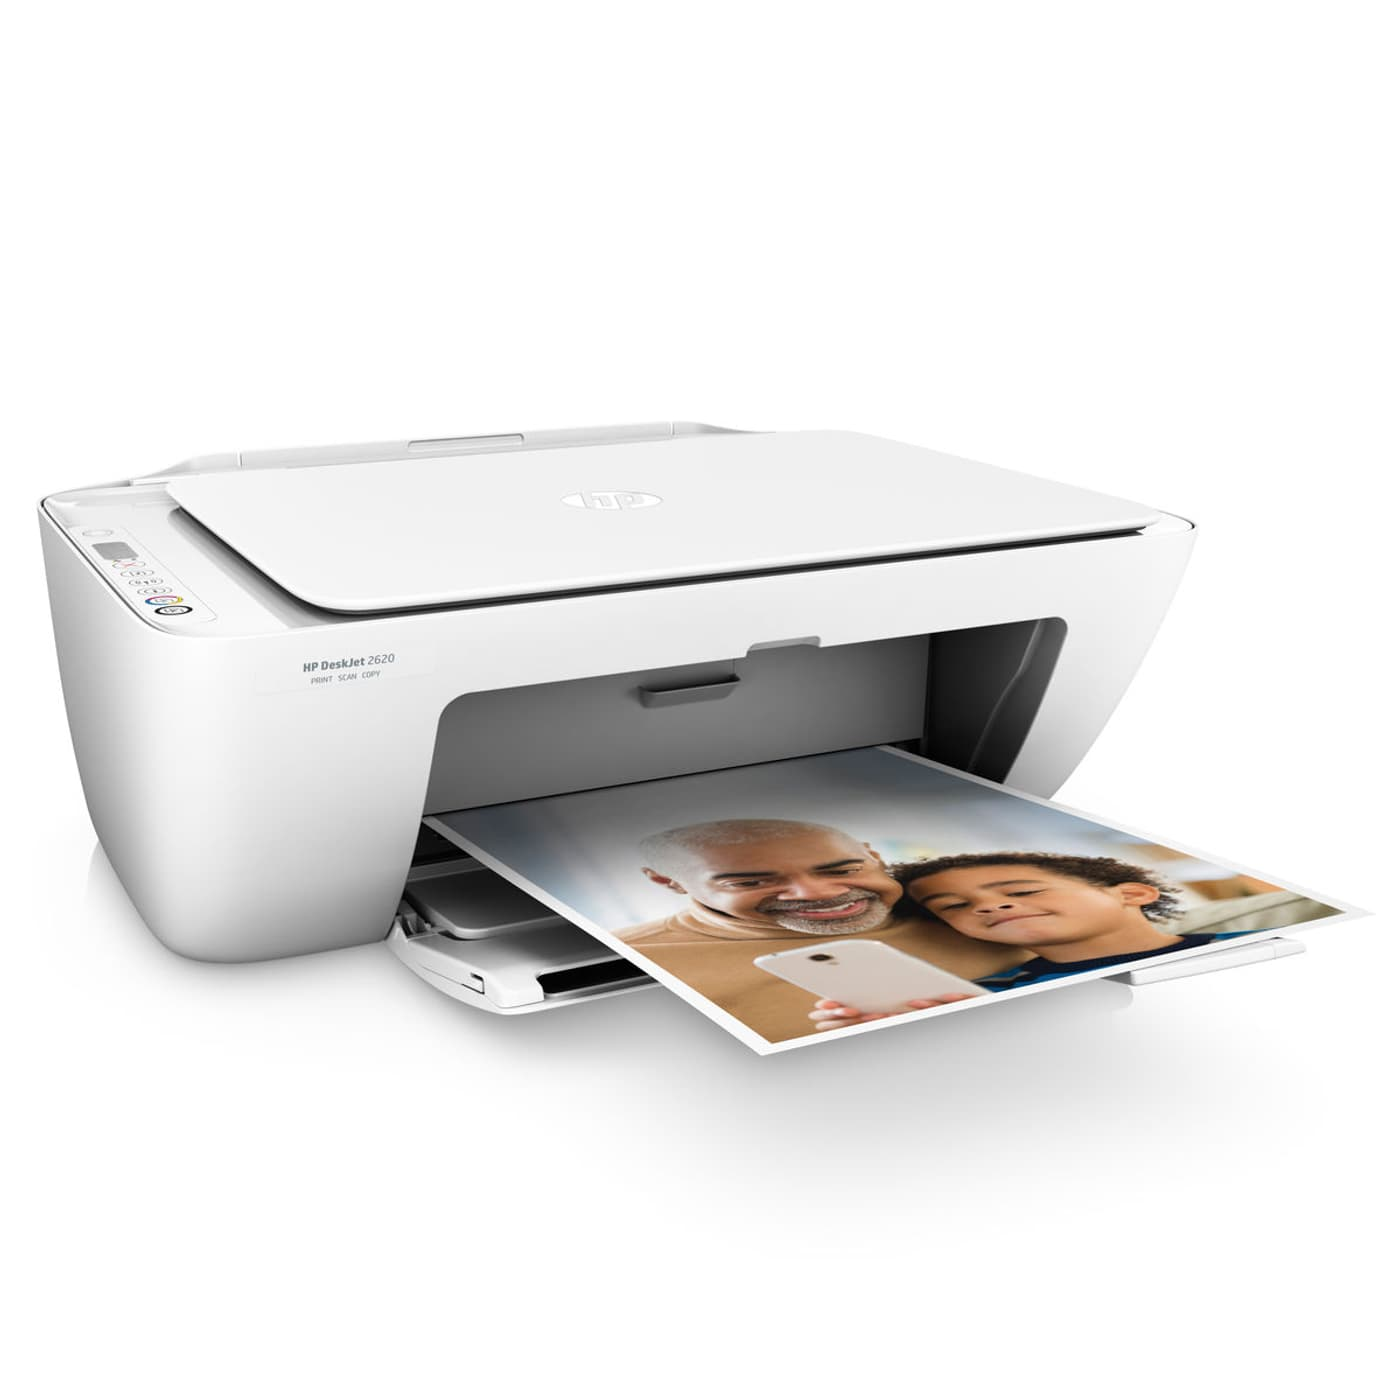 hp deskjet 2620 aio imprimante scanner copieur migros. Black Bedroom Furniture Sets. Home Design Ideas